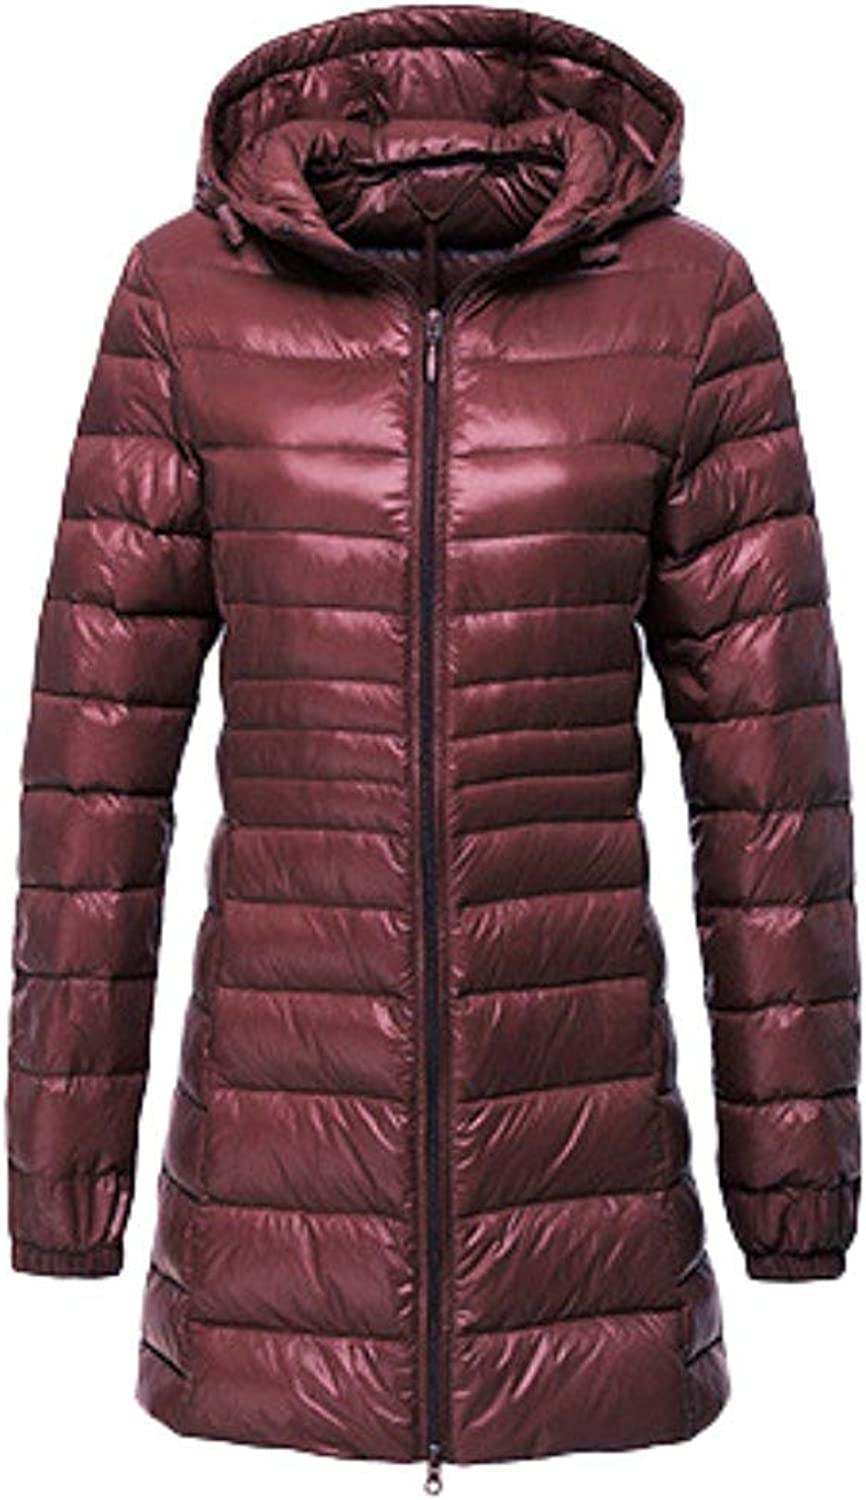 Oudan Women's Down Jacket Quilted Jacket Ultra Lightweight Hooded Jacket Long Down Coat SXXL (color   Dark red, Size   XL)